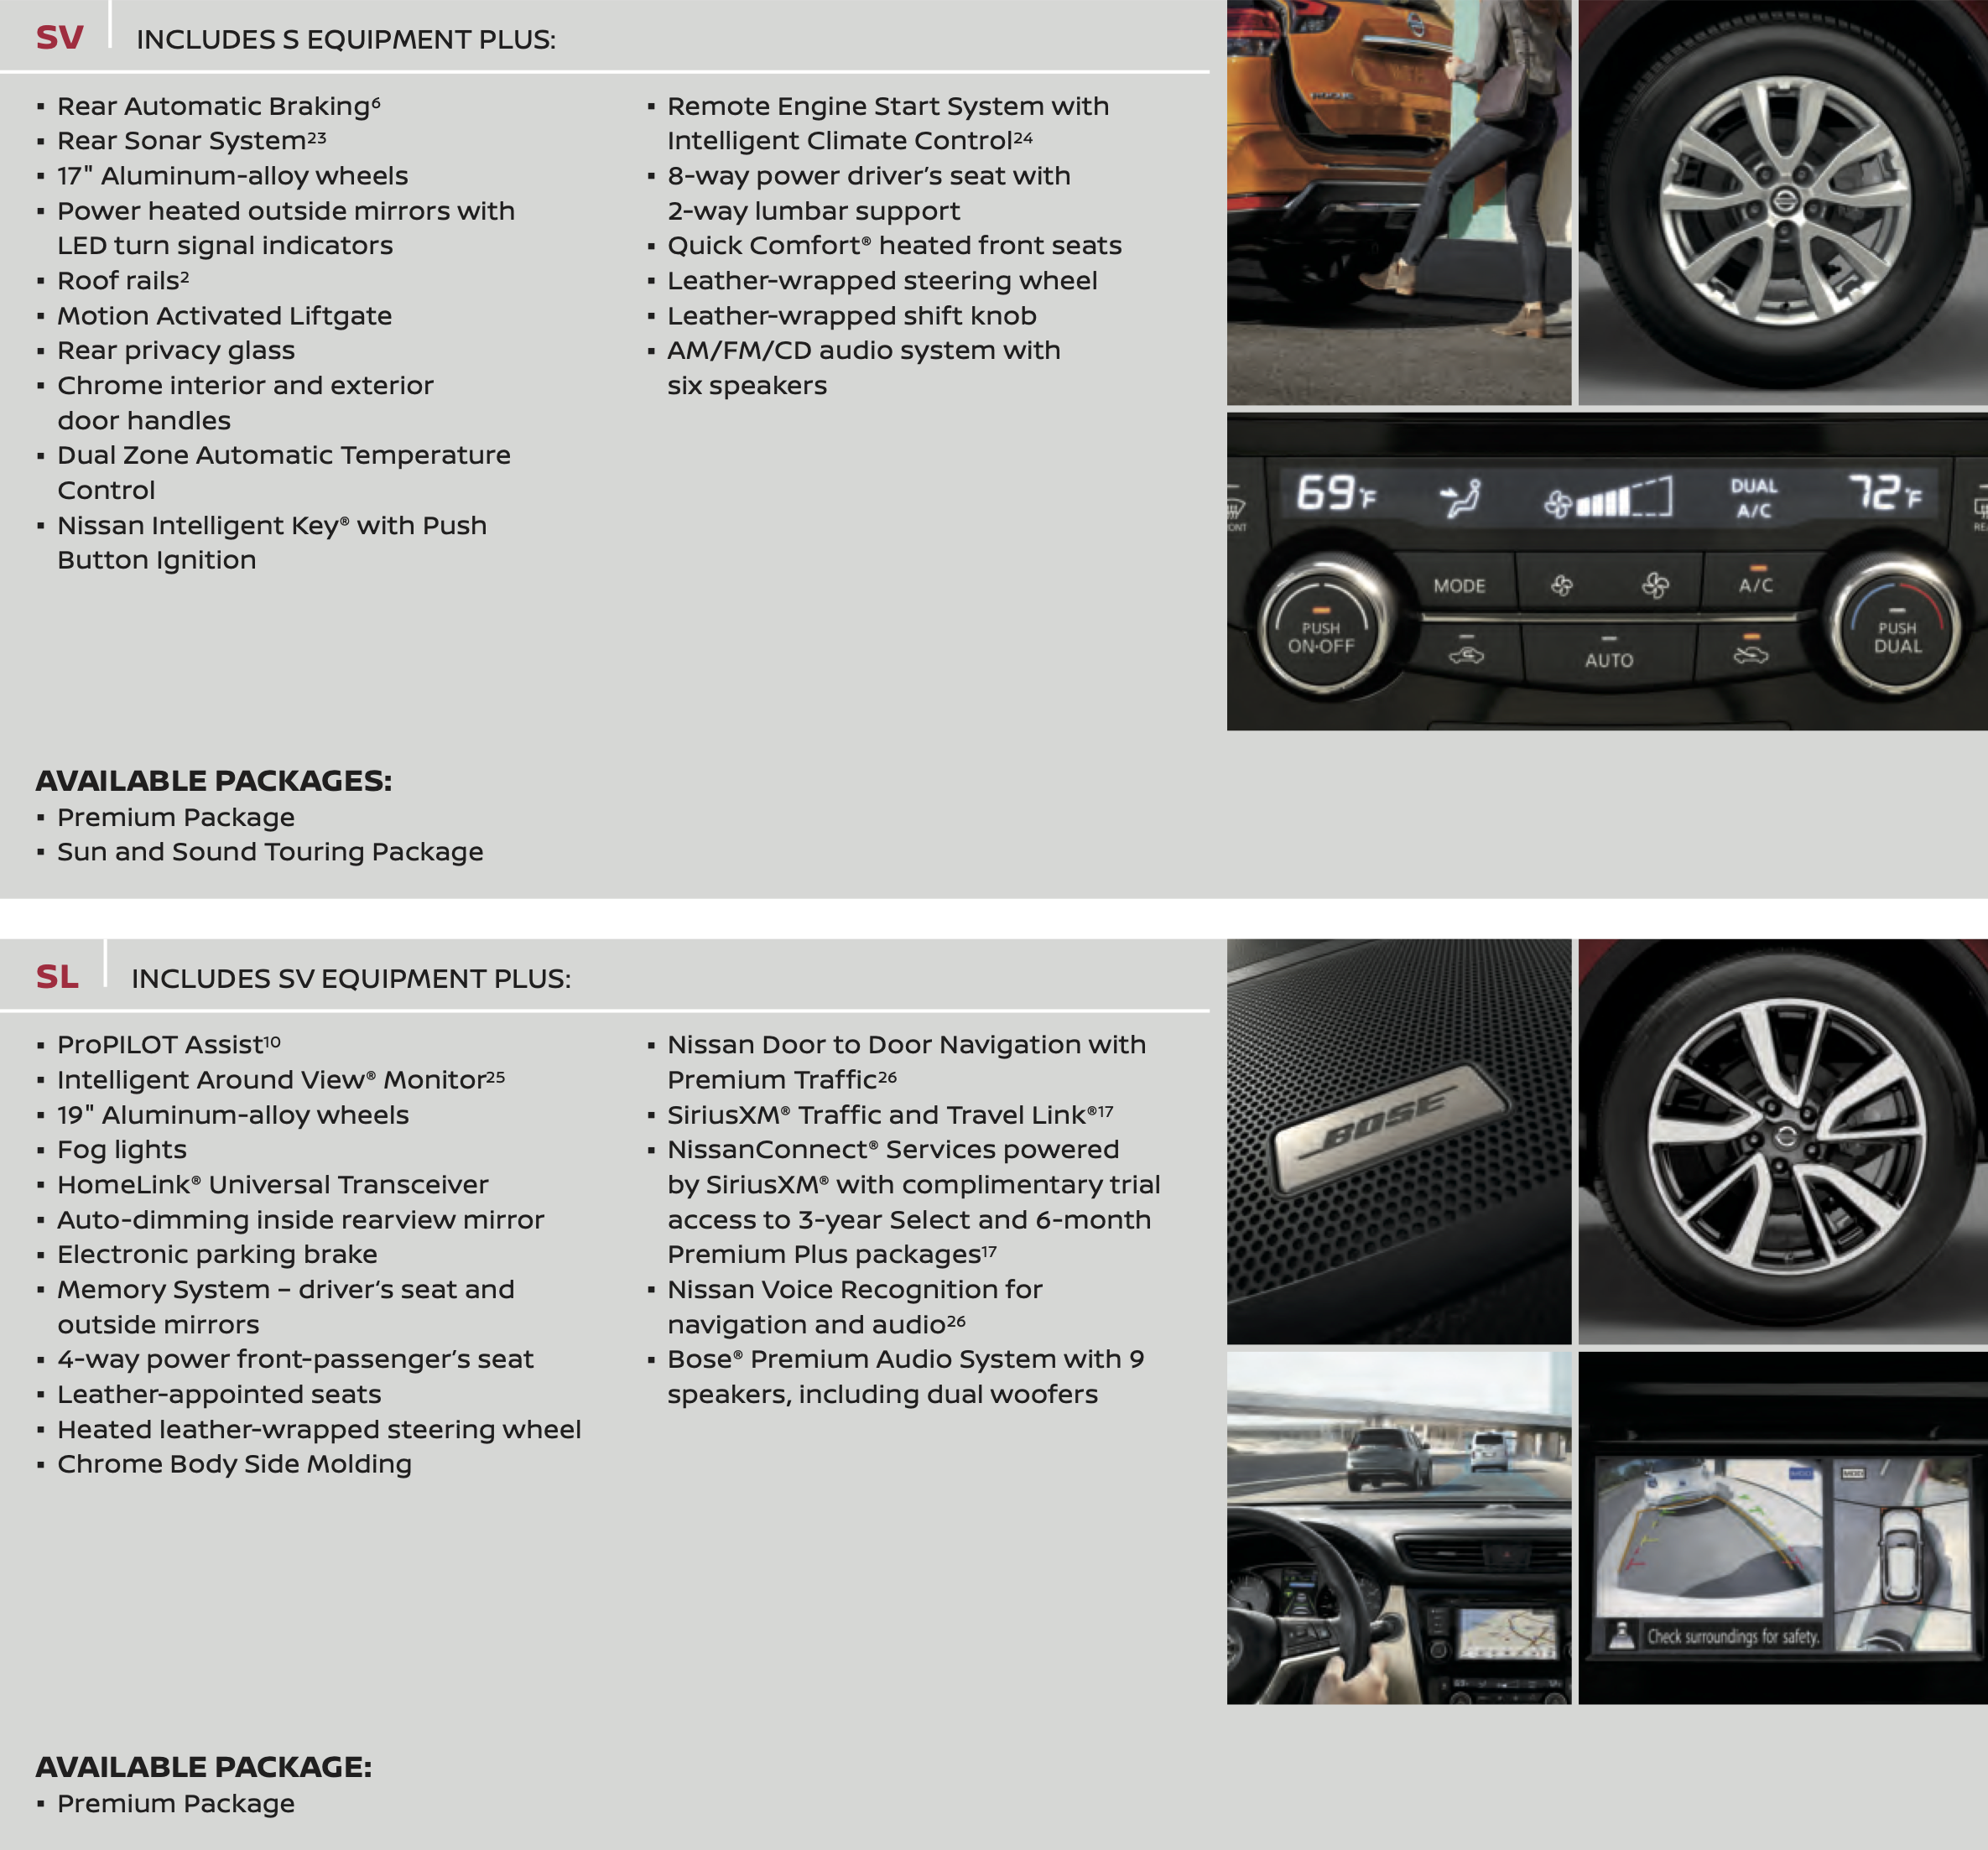 2020 Rogue Trim SV/SL Specifications